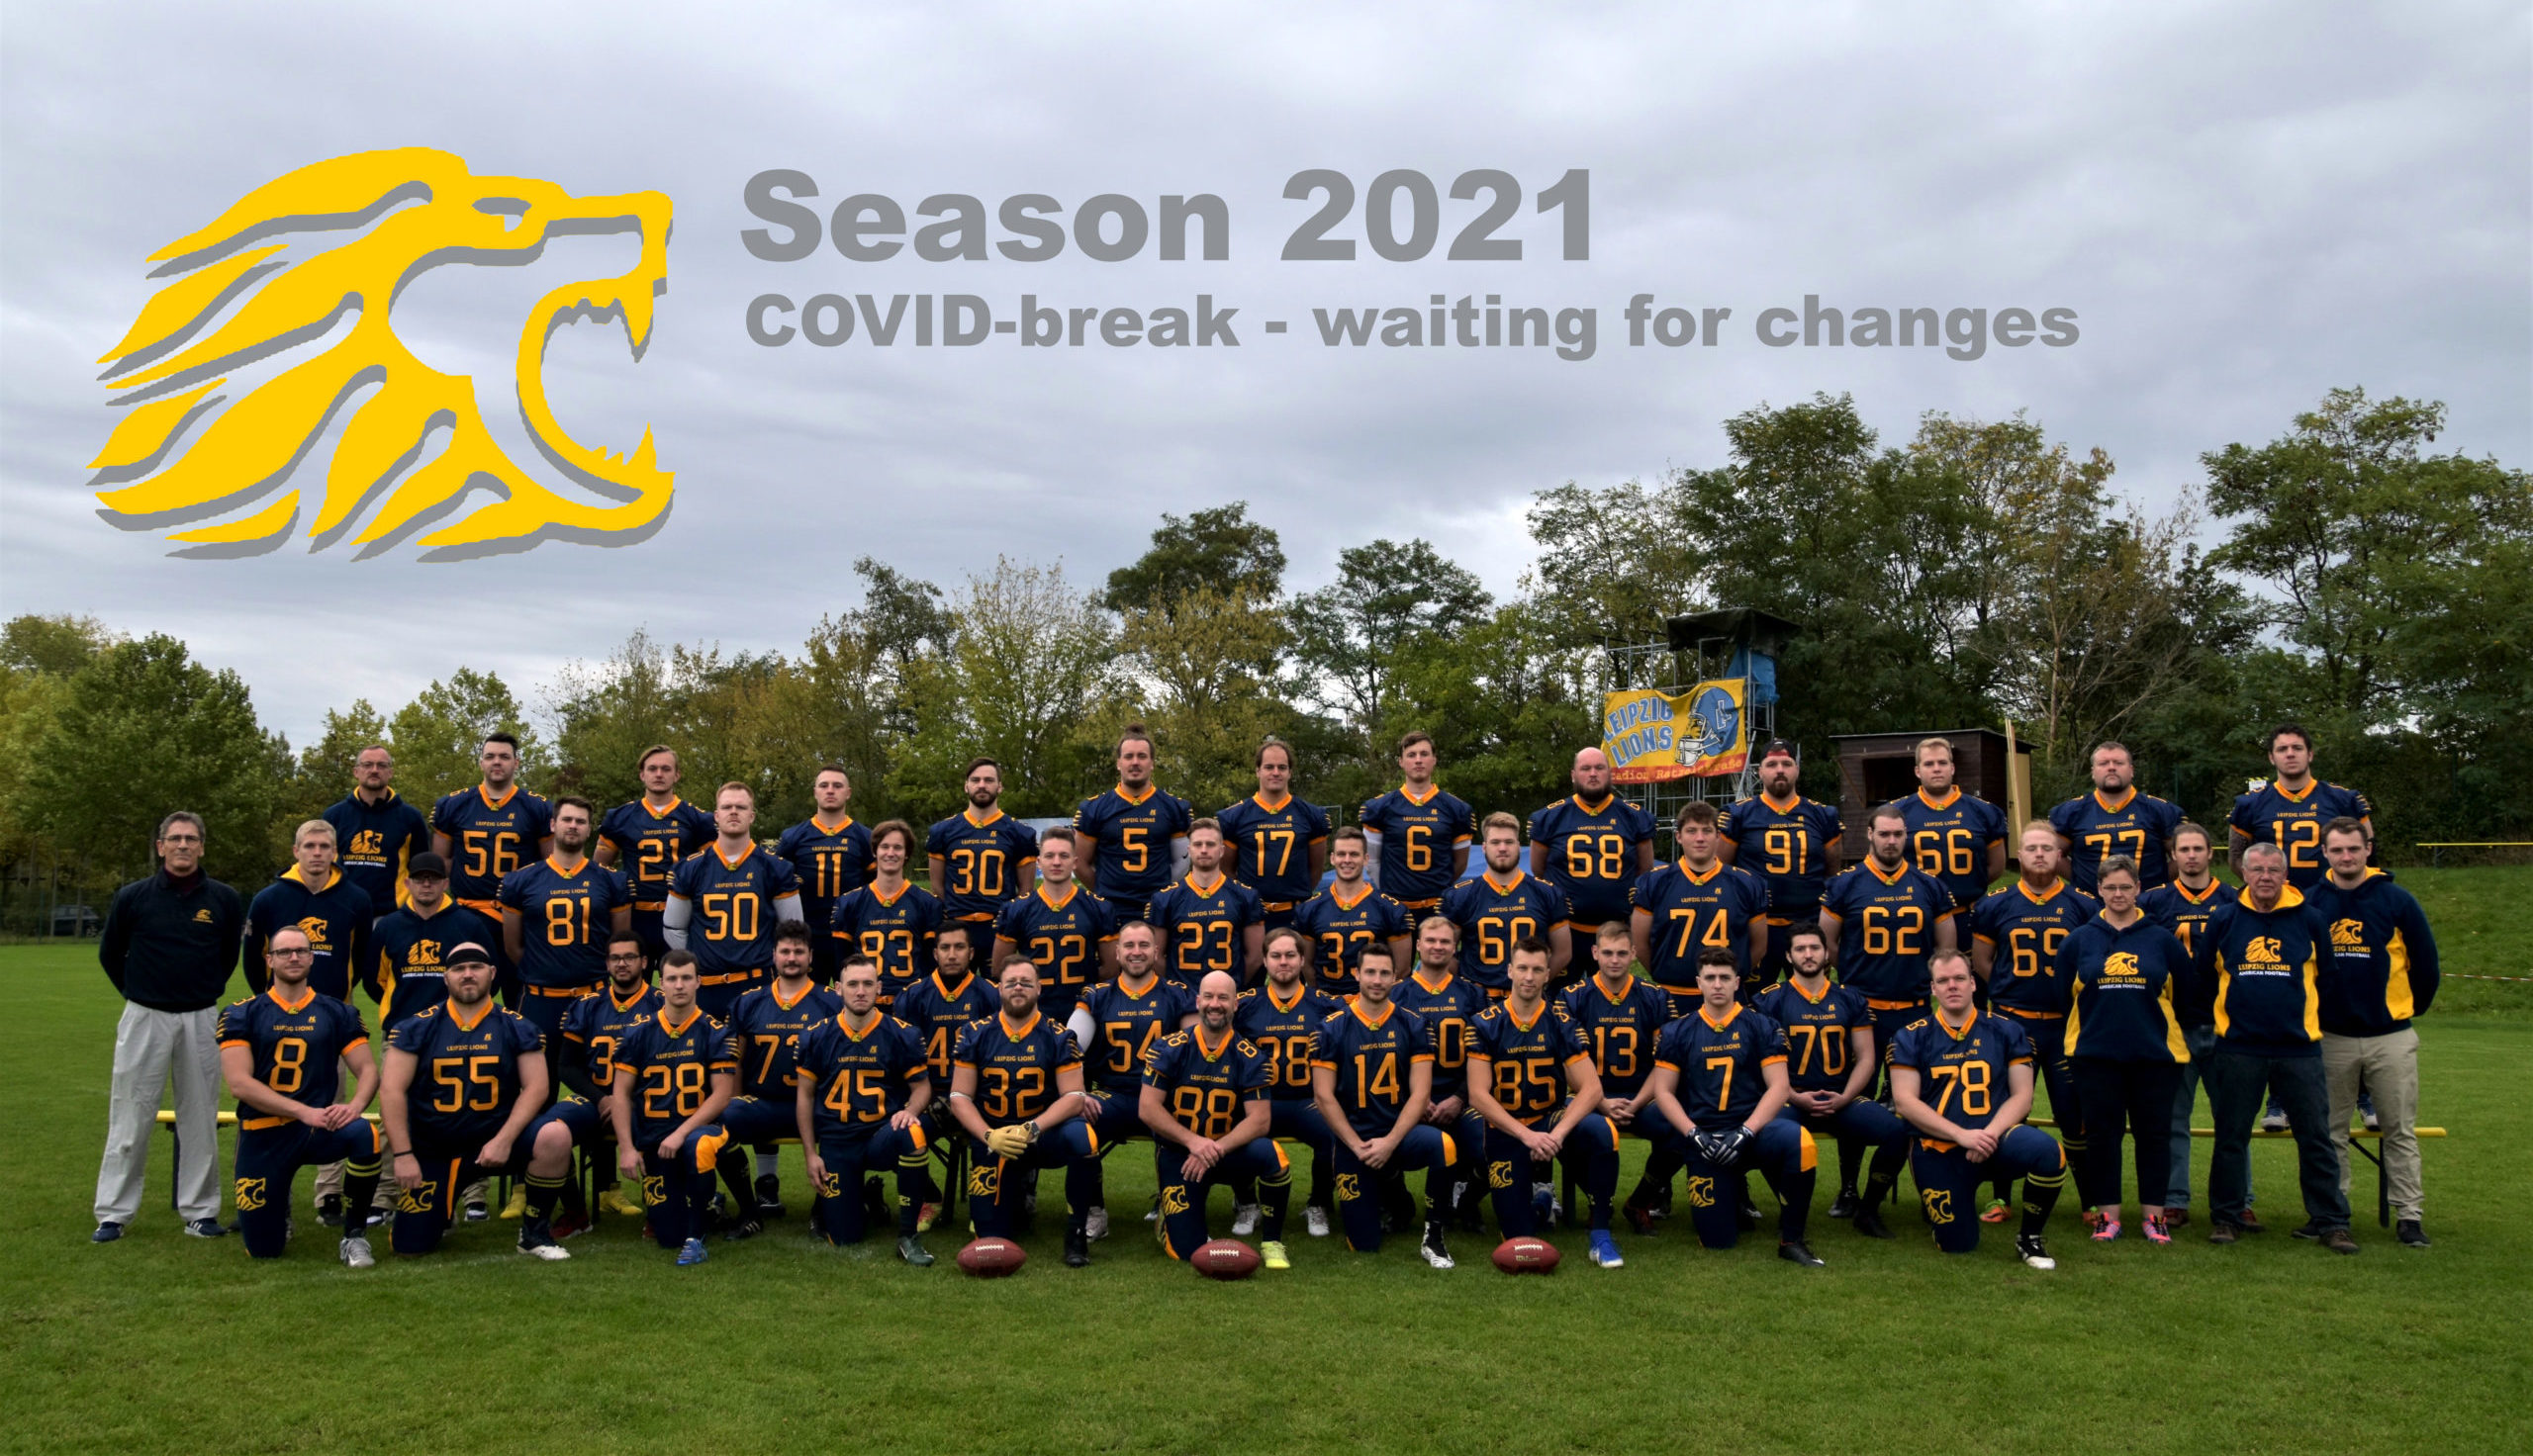 Season 2021 – Covid-break